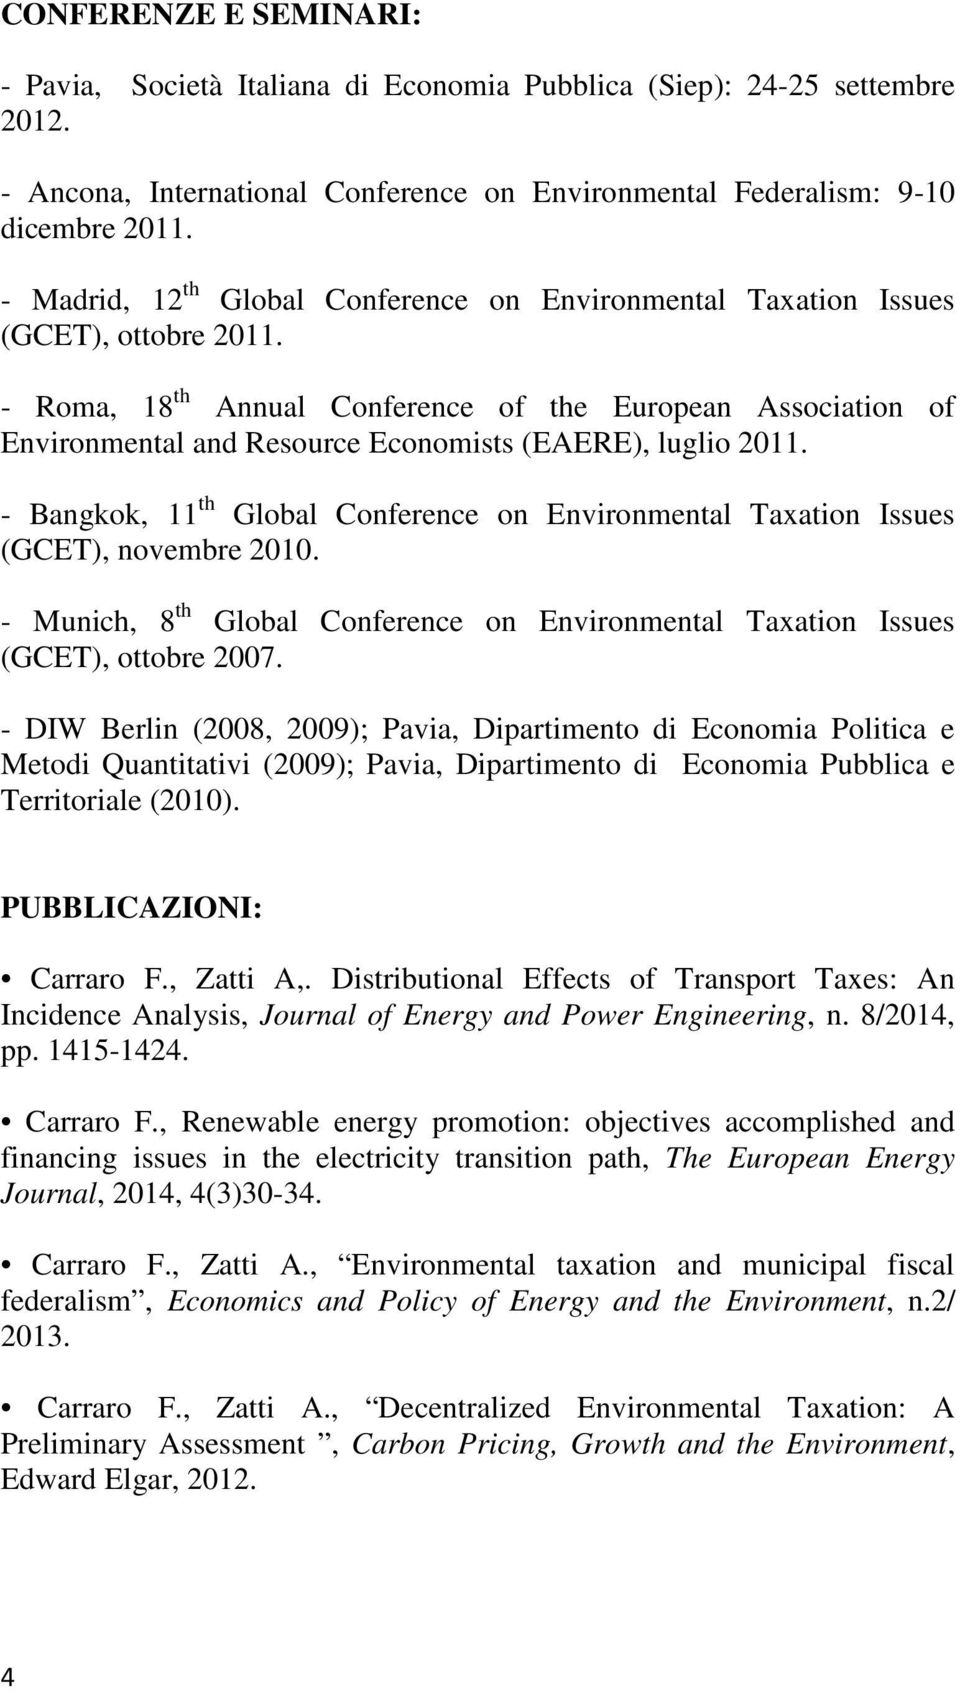 - Roma, 18 th Annual Conference of the European Association of Environmental and Resource Economists (EAERE), luglio 2011.